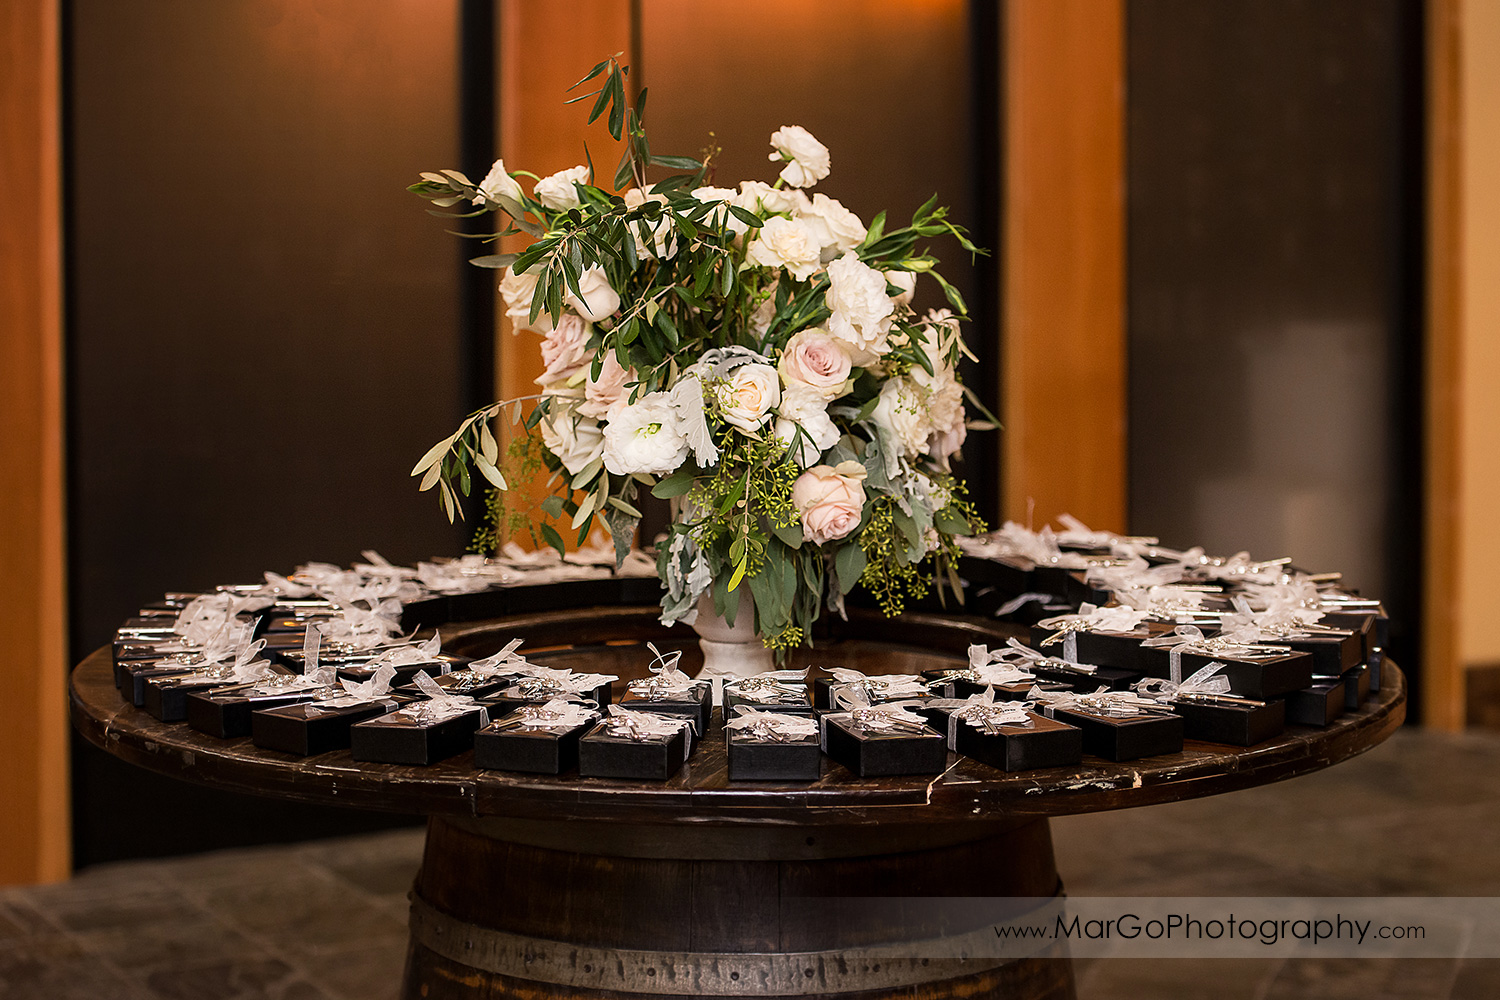 wodden table with wedding favors at Livermore Garre Vineyard and Winery